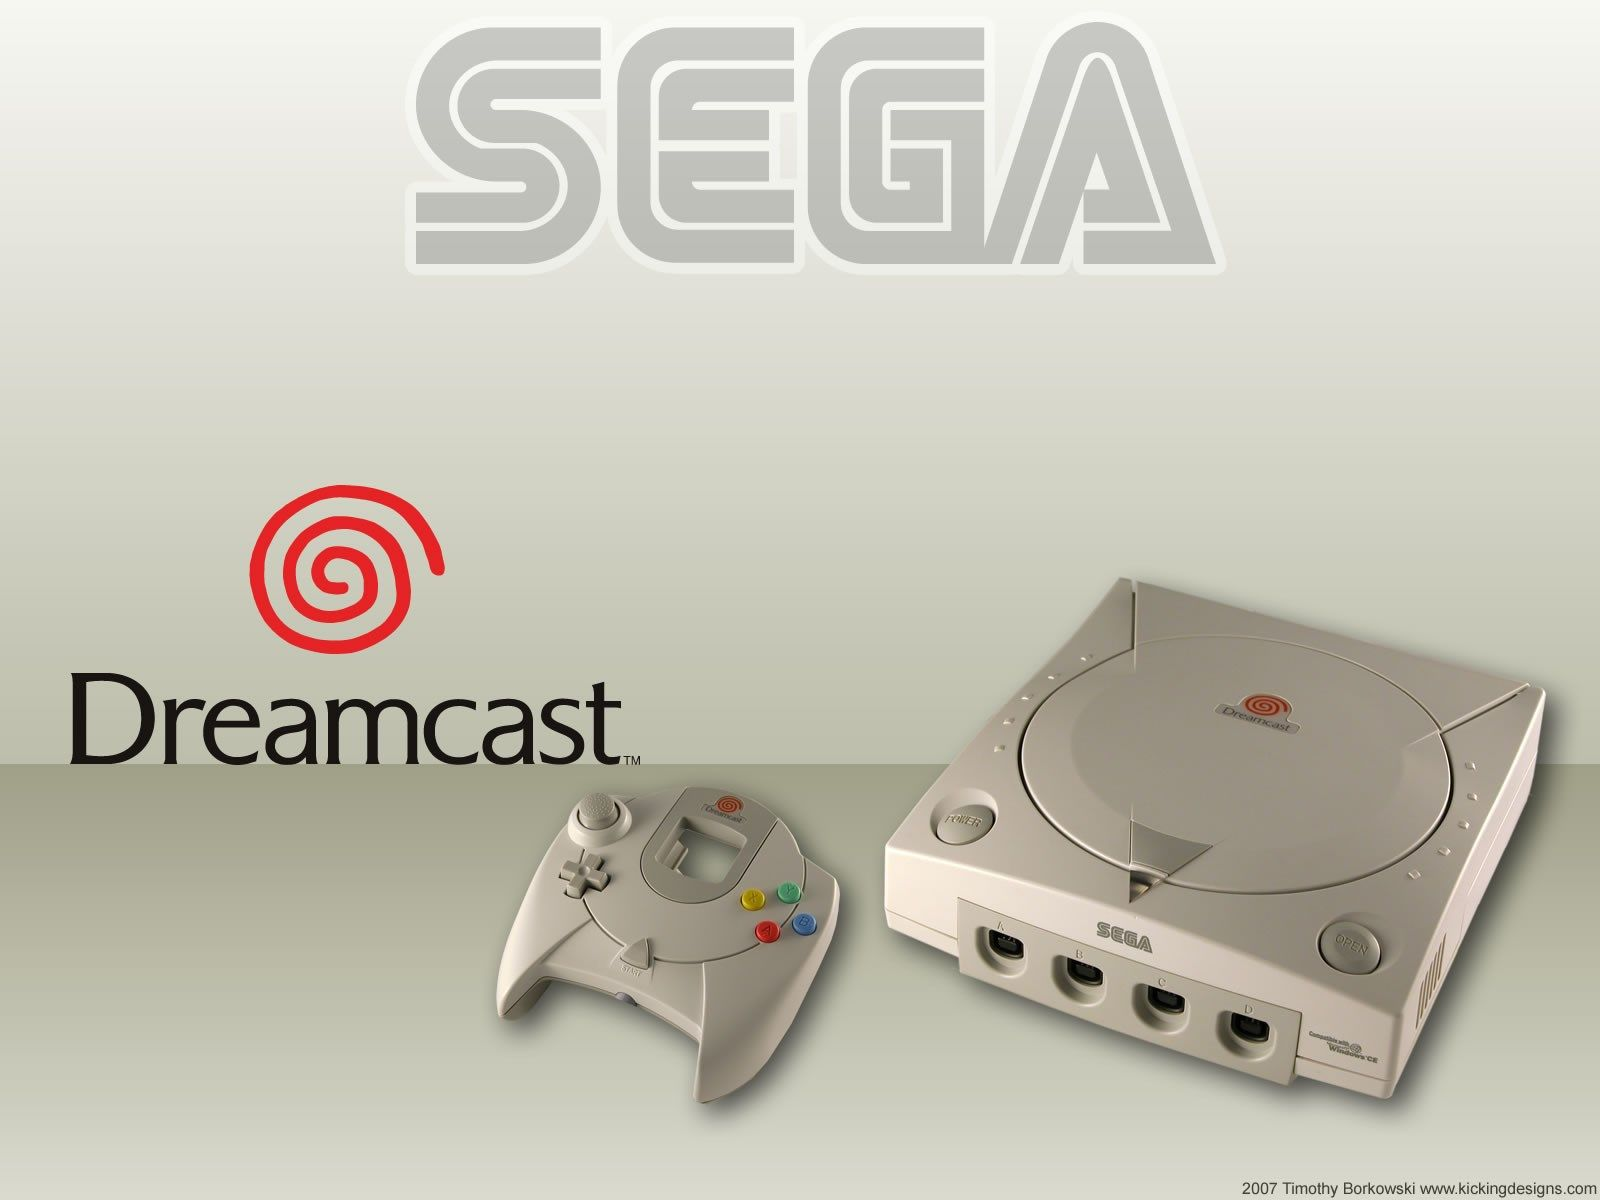 Wallpapers Free Sega Sega Dreamcast Sega High Resolution Wallpapers